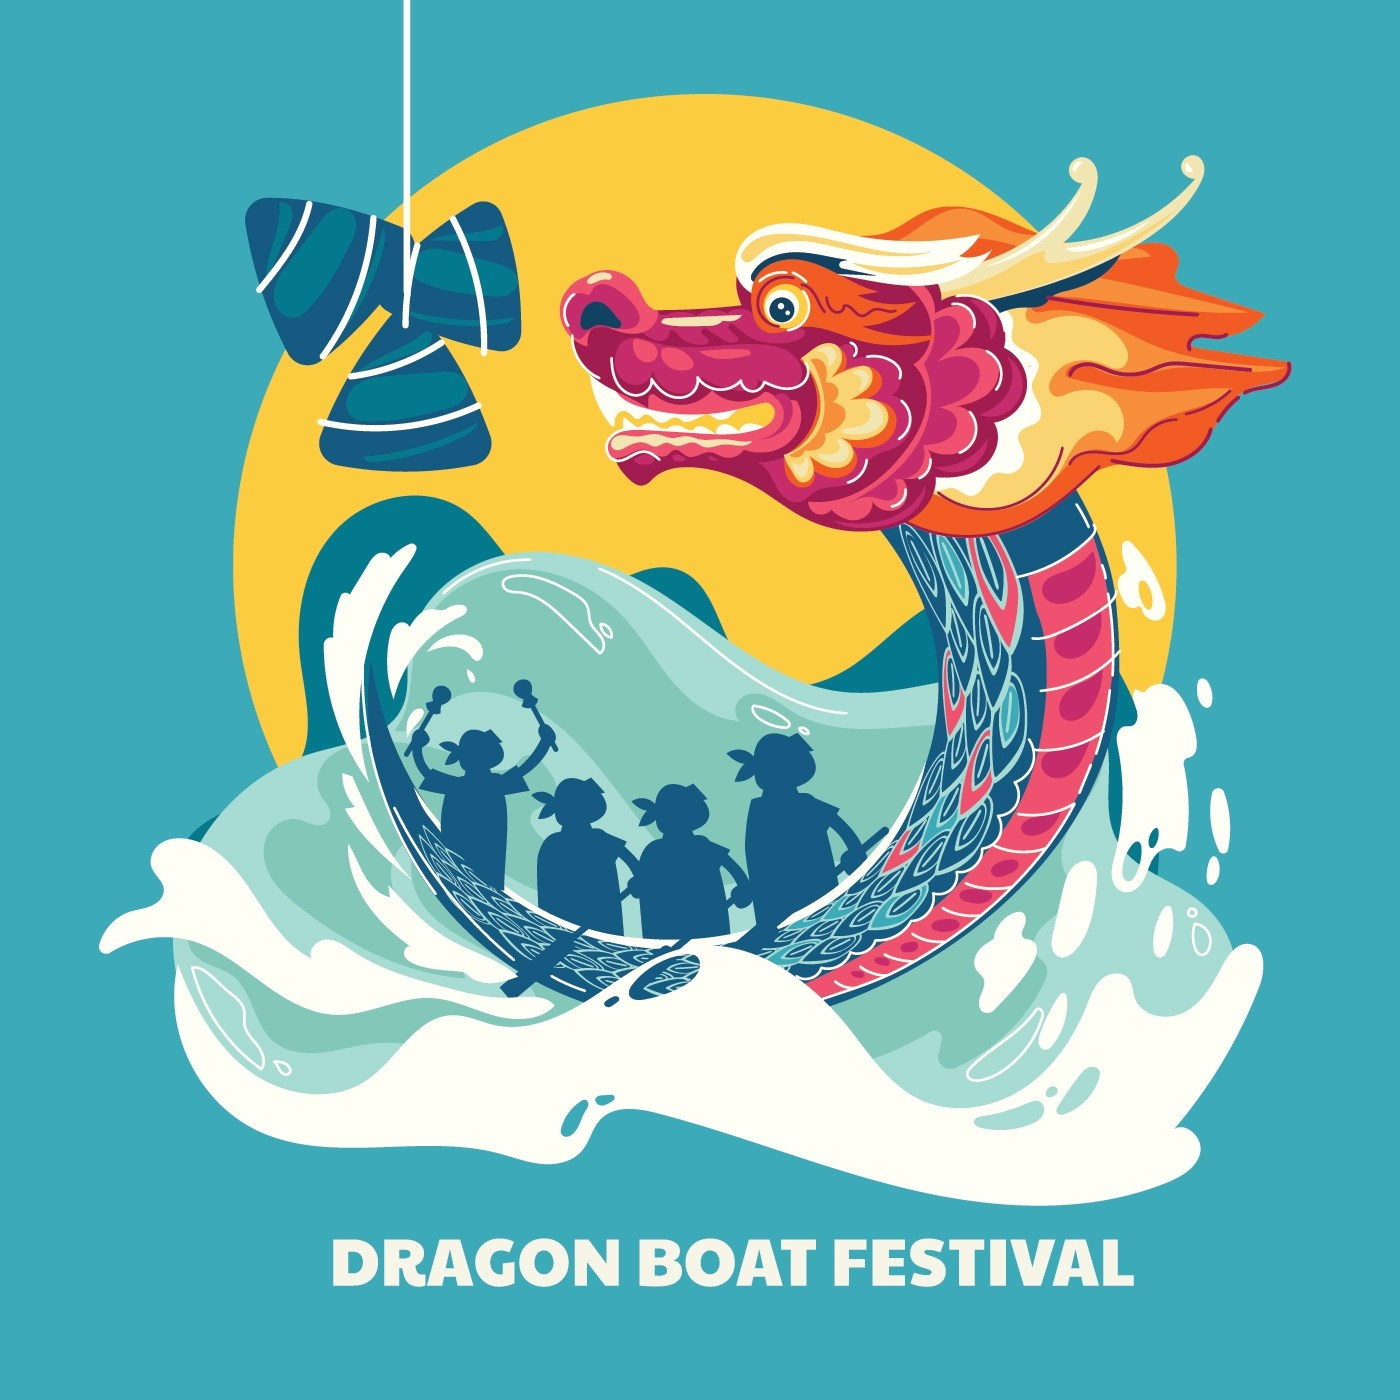 Dragon Boat Festival Illustration